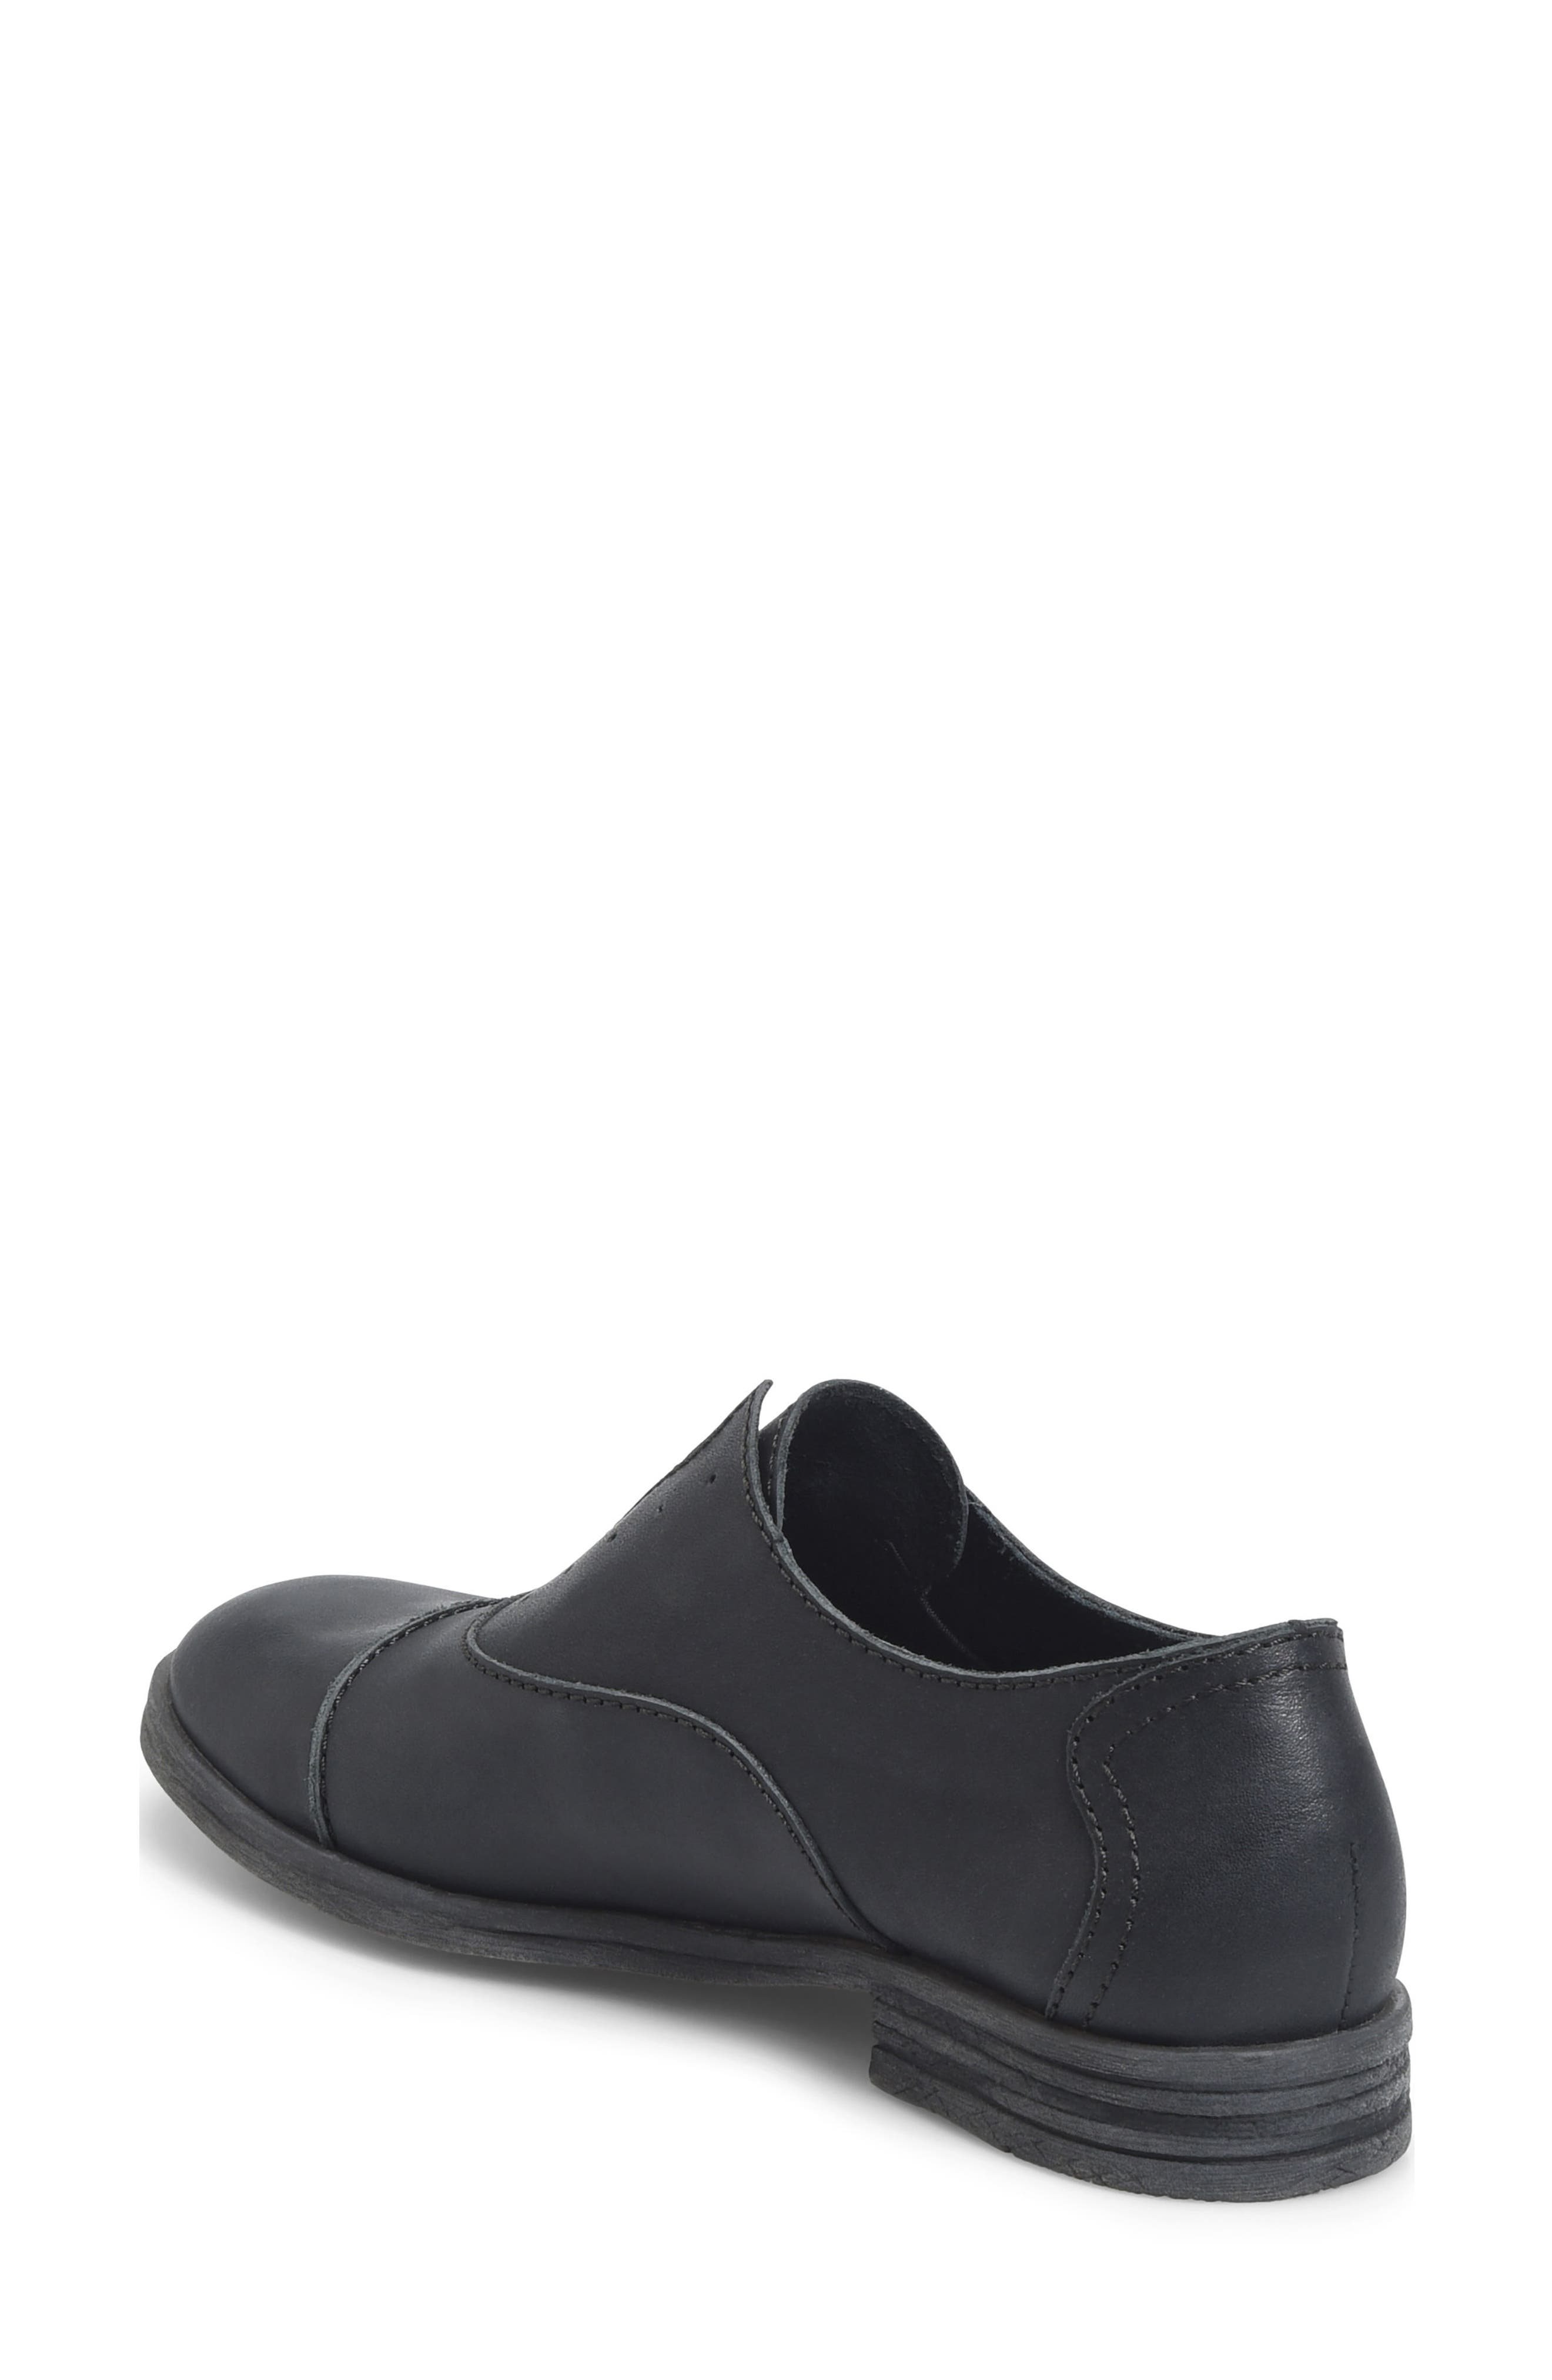 BØRN,                             Forato Slip-On Oxford,                             Alternate thumbnail 2, color,                             001